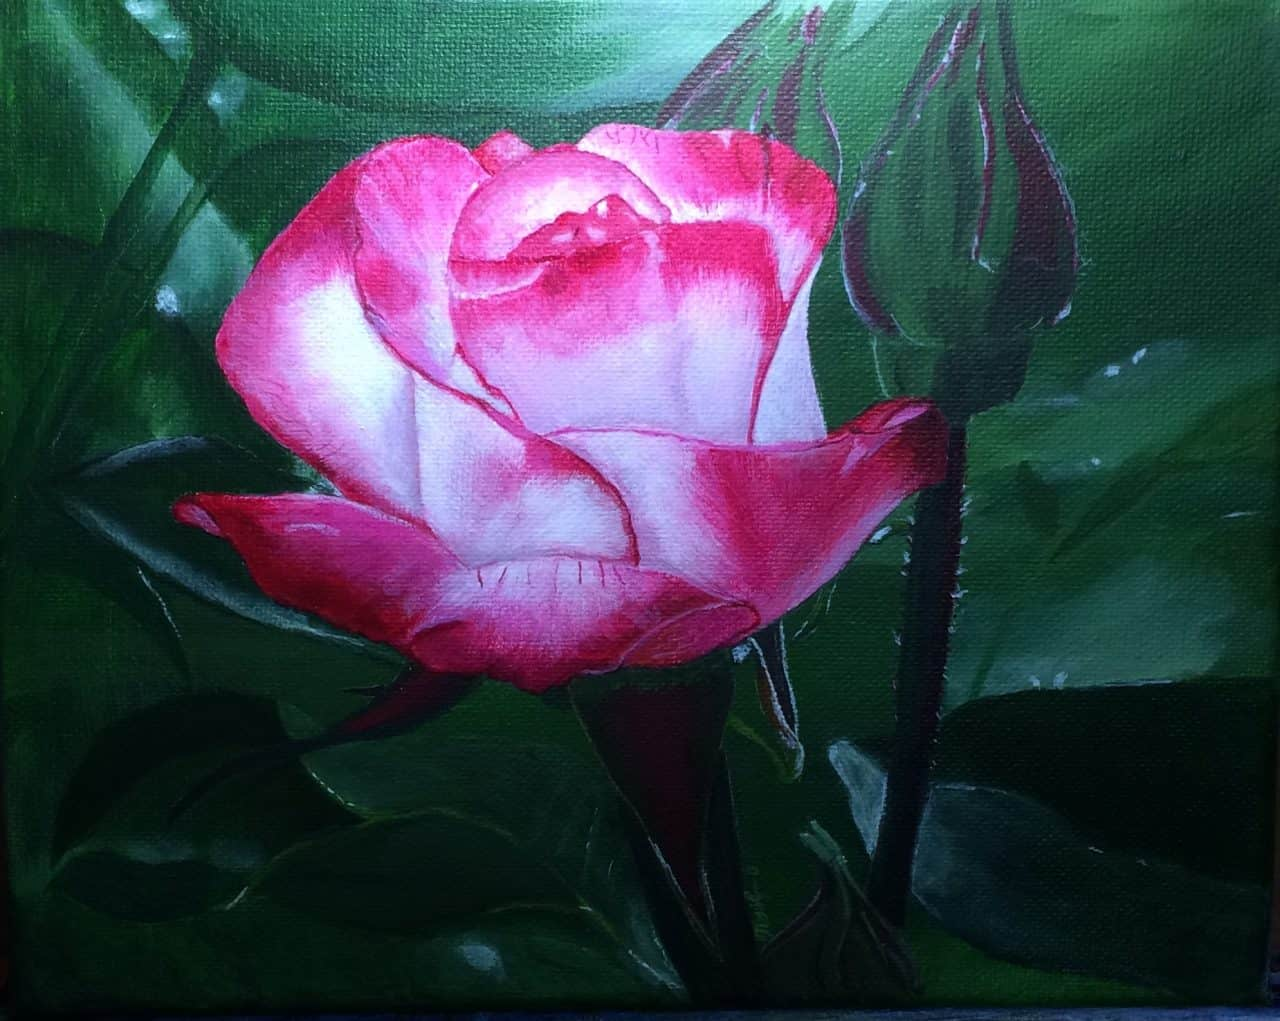 How To Varnish Acrylic Paintings - Trembeling Art